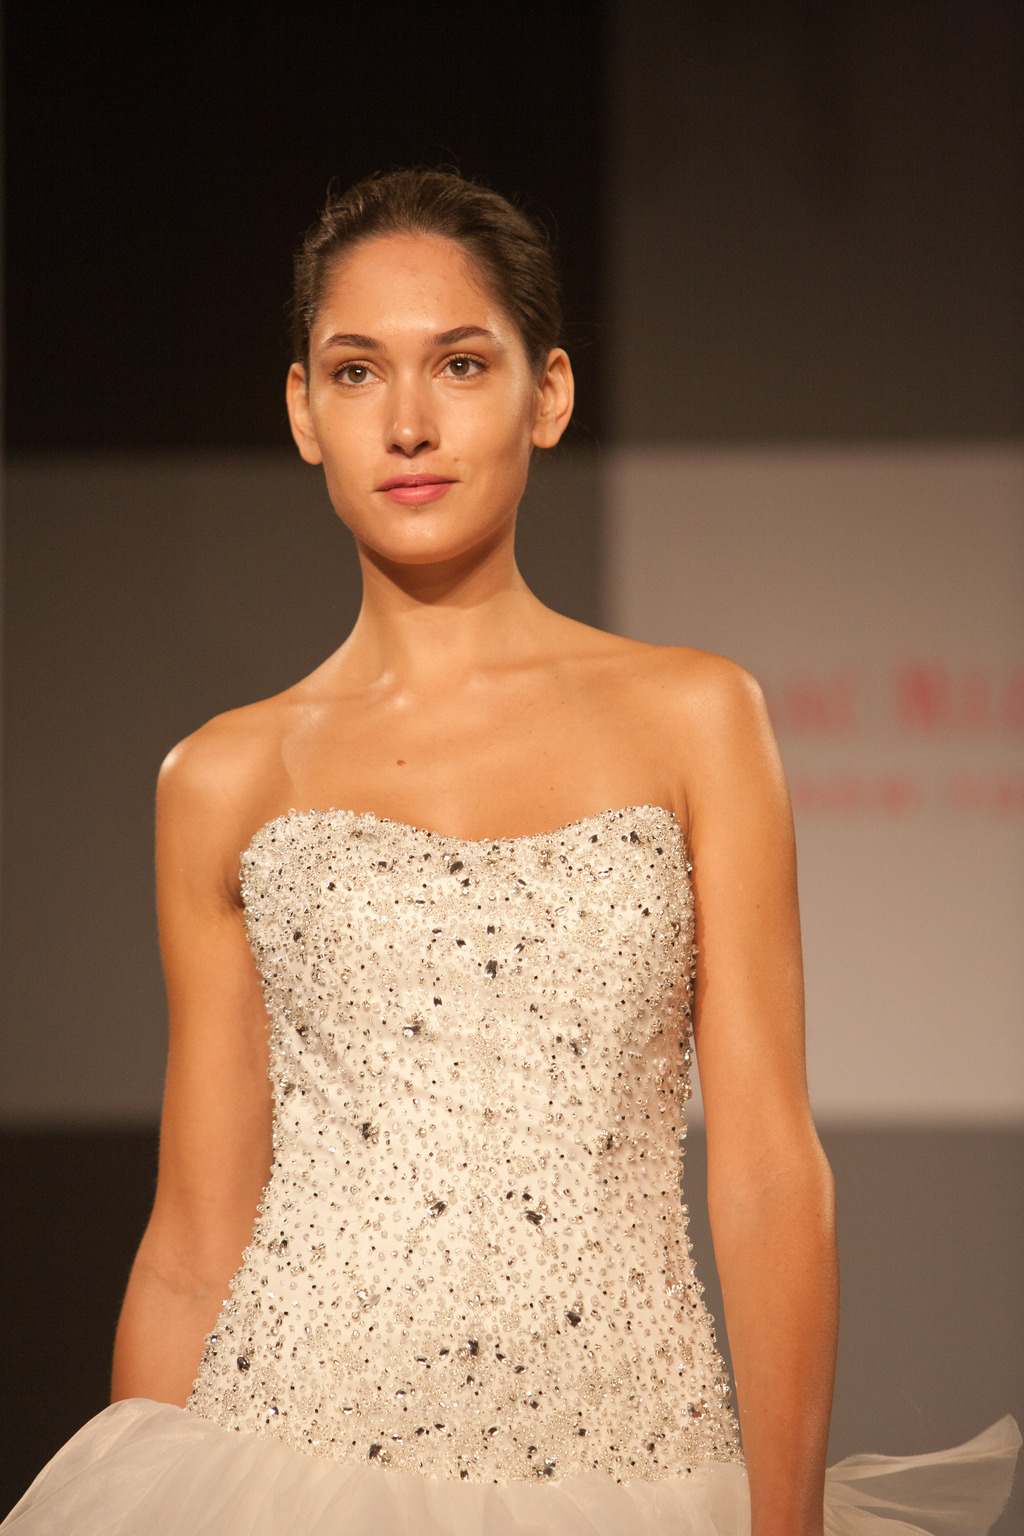 Bridal-beauty-inspiration-hair-makeup-from-moroccanoil-and-isaac-mizrahi2.full